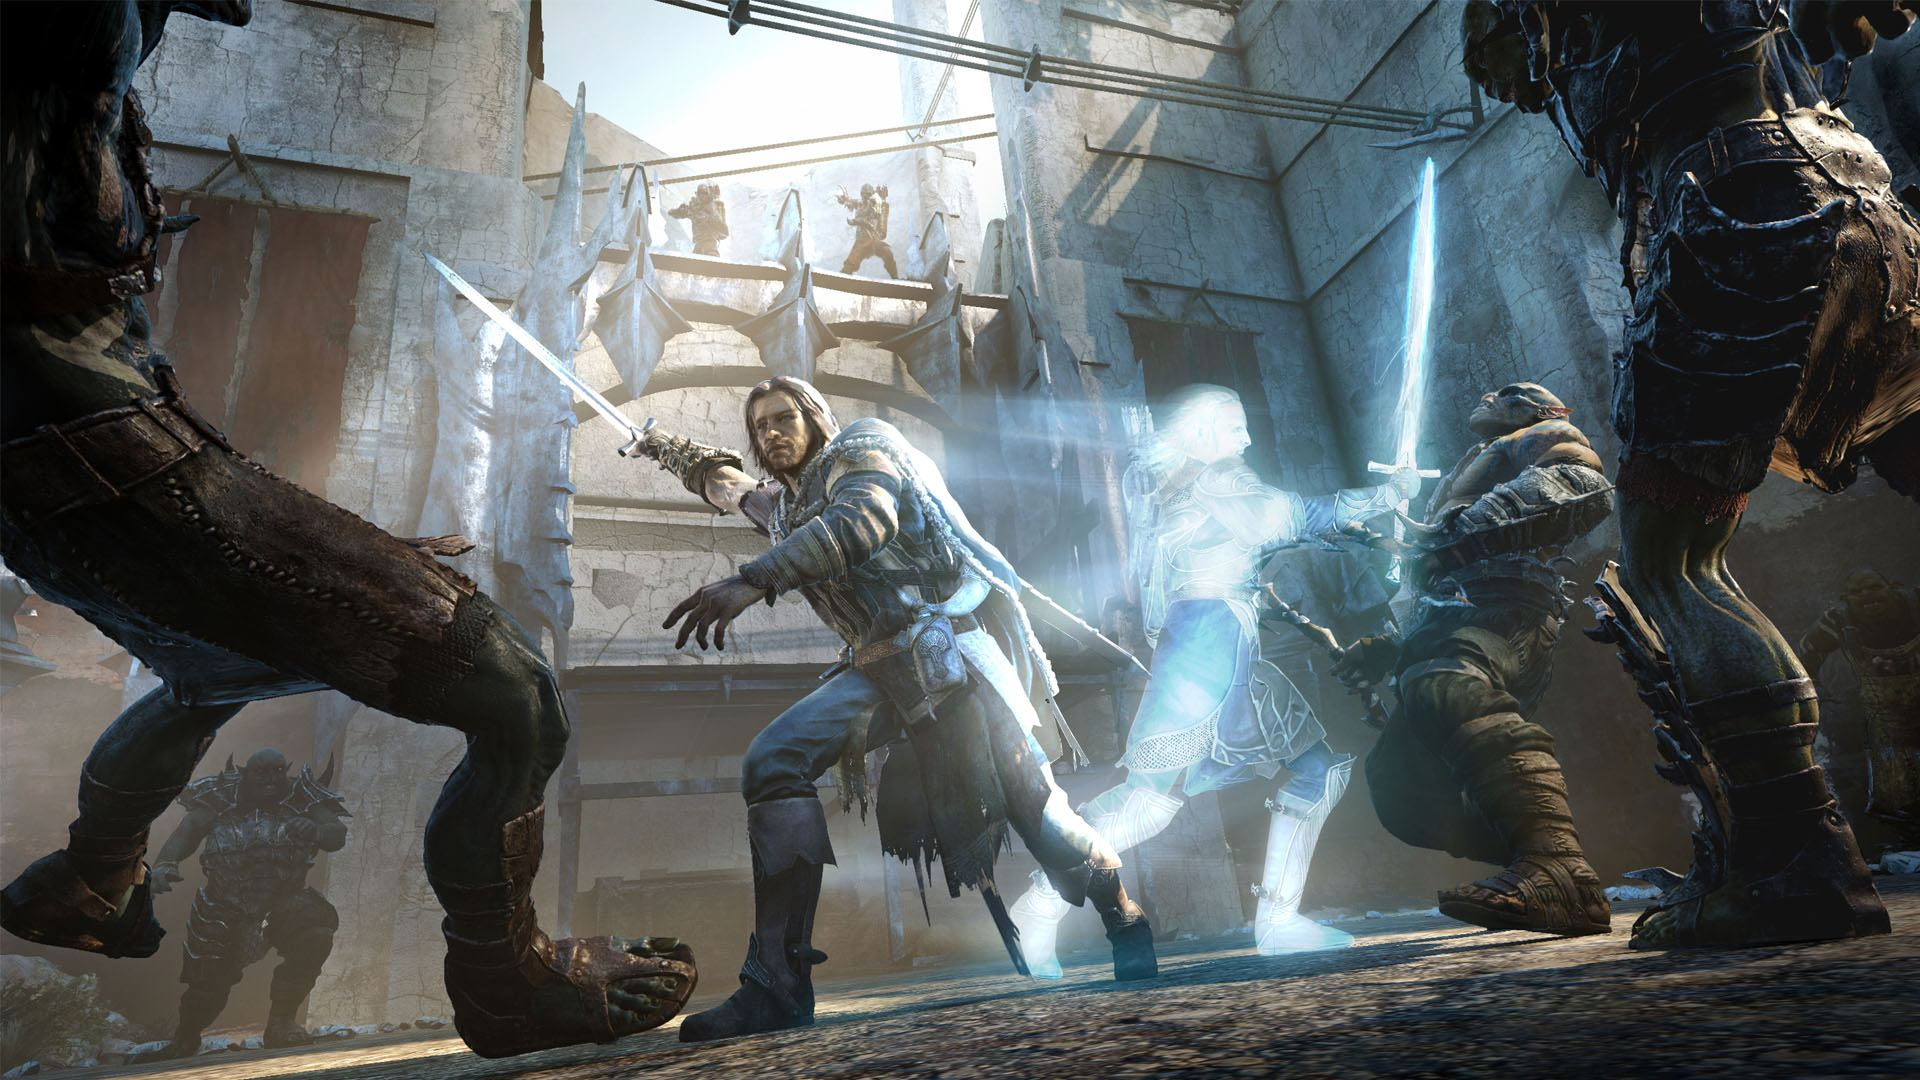 KHAiHOM.com - Middle-earth: Shadow of Mordor - Test of Speed